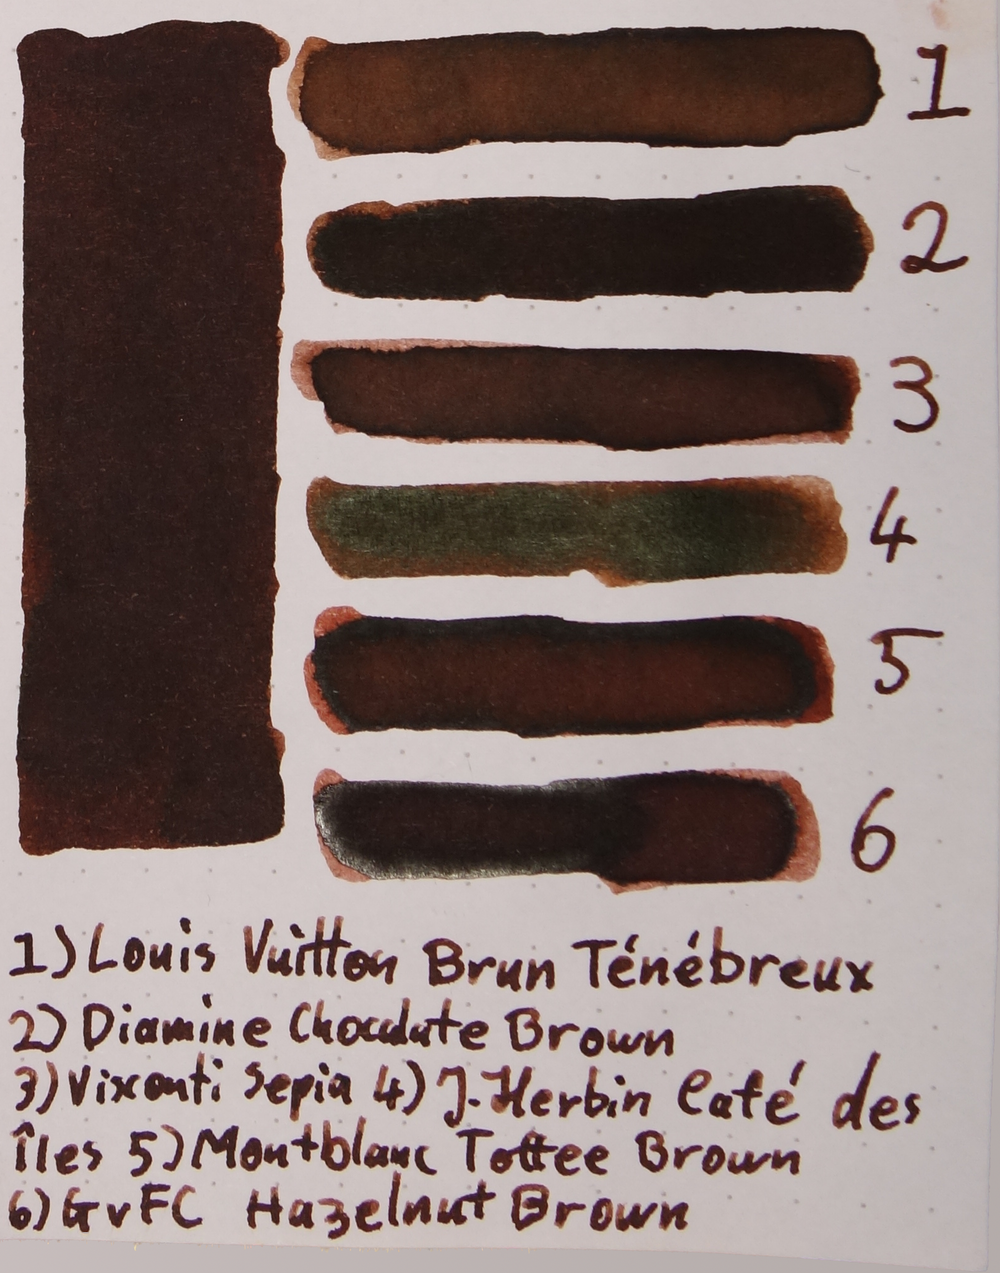 1) Louis Vuitton Brun Ténébreux, 2) Diamine Chocolate Brown, 3) Visconti Sepia, 4) J. Herbin Café des Îles, 5) Montblanc Toffee Brown, 6) Graf von Faber-Castell Hazelnut Brown.